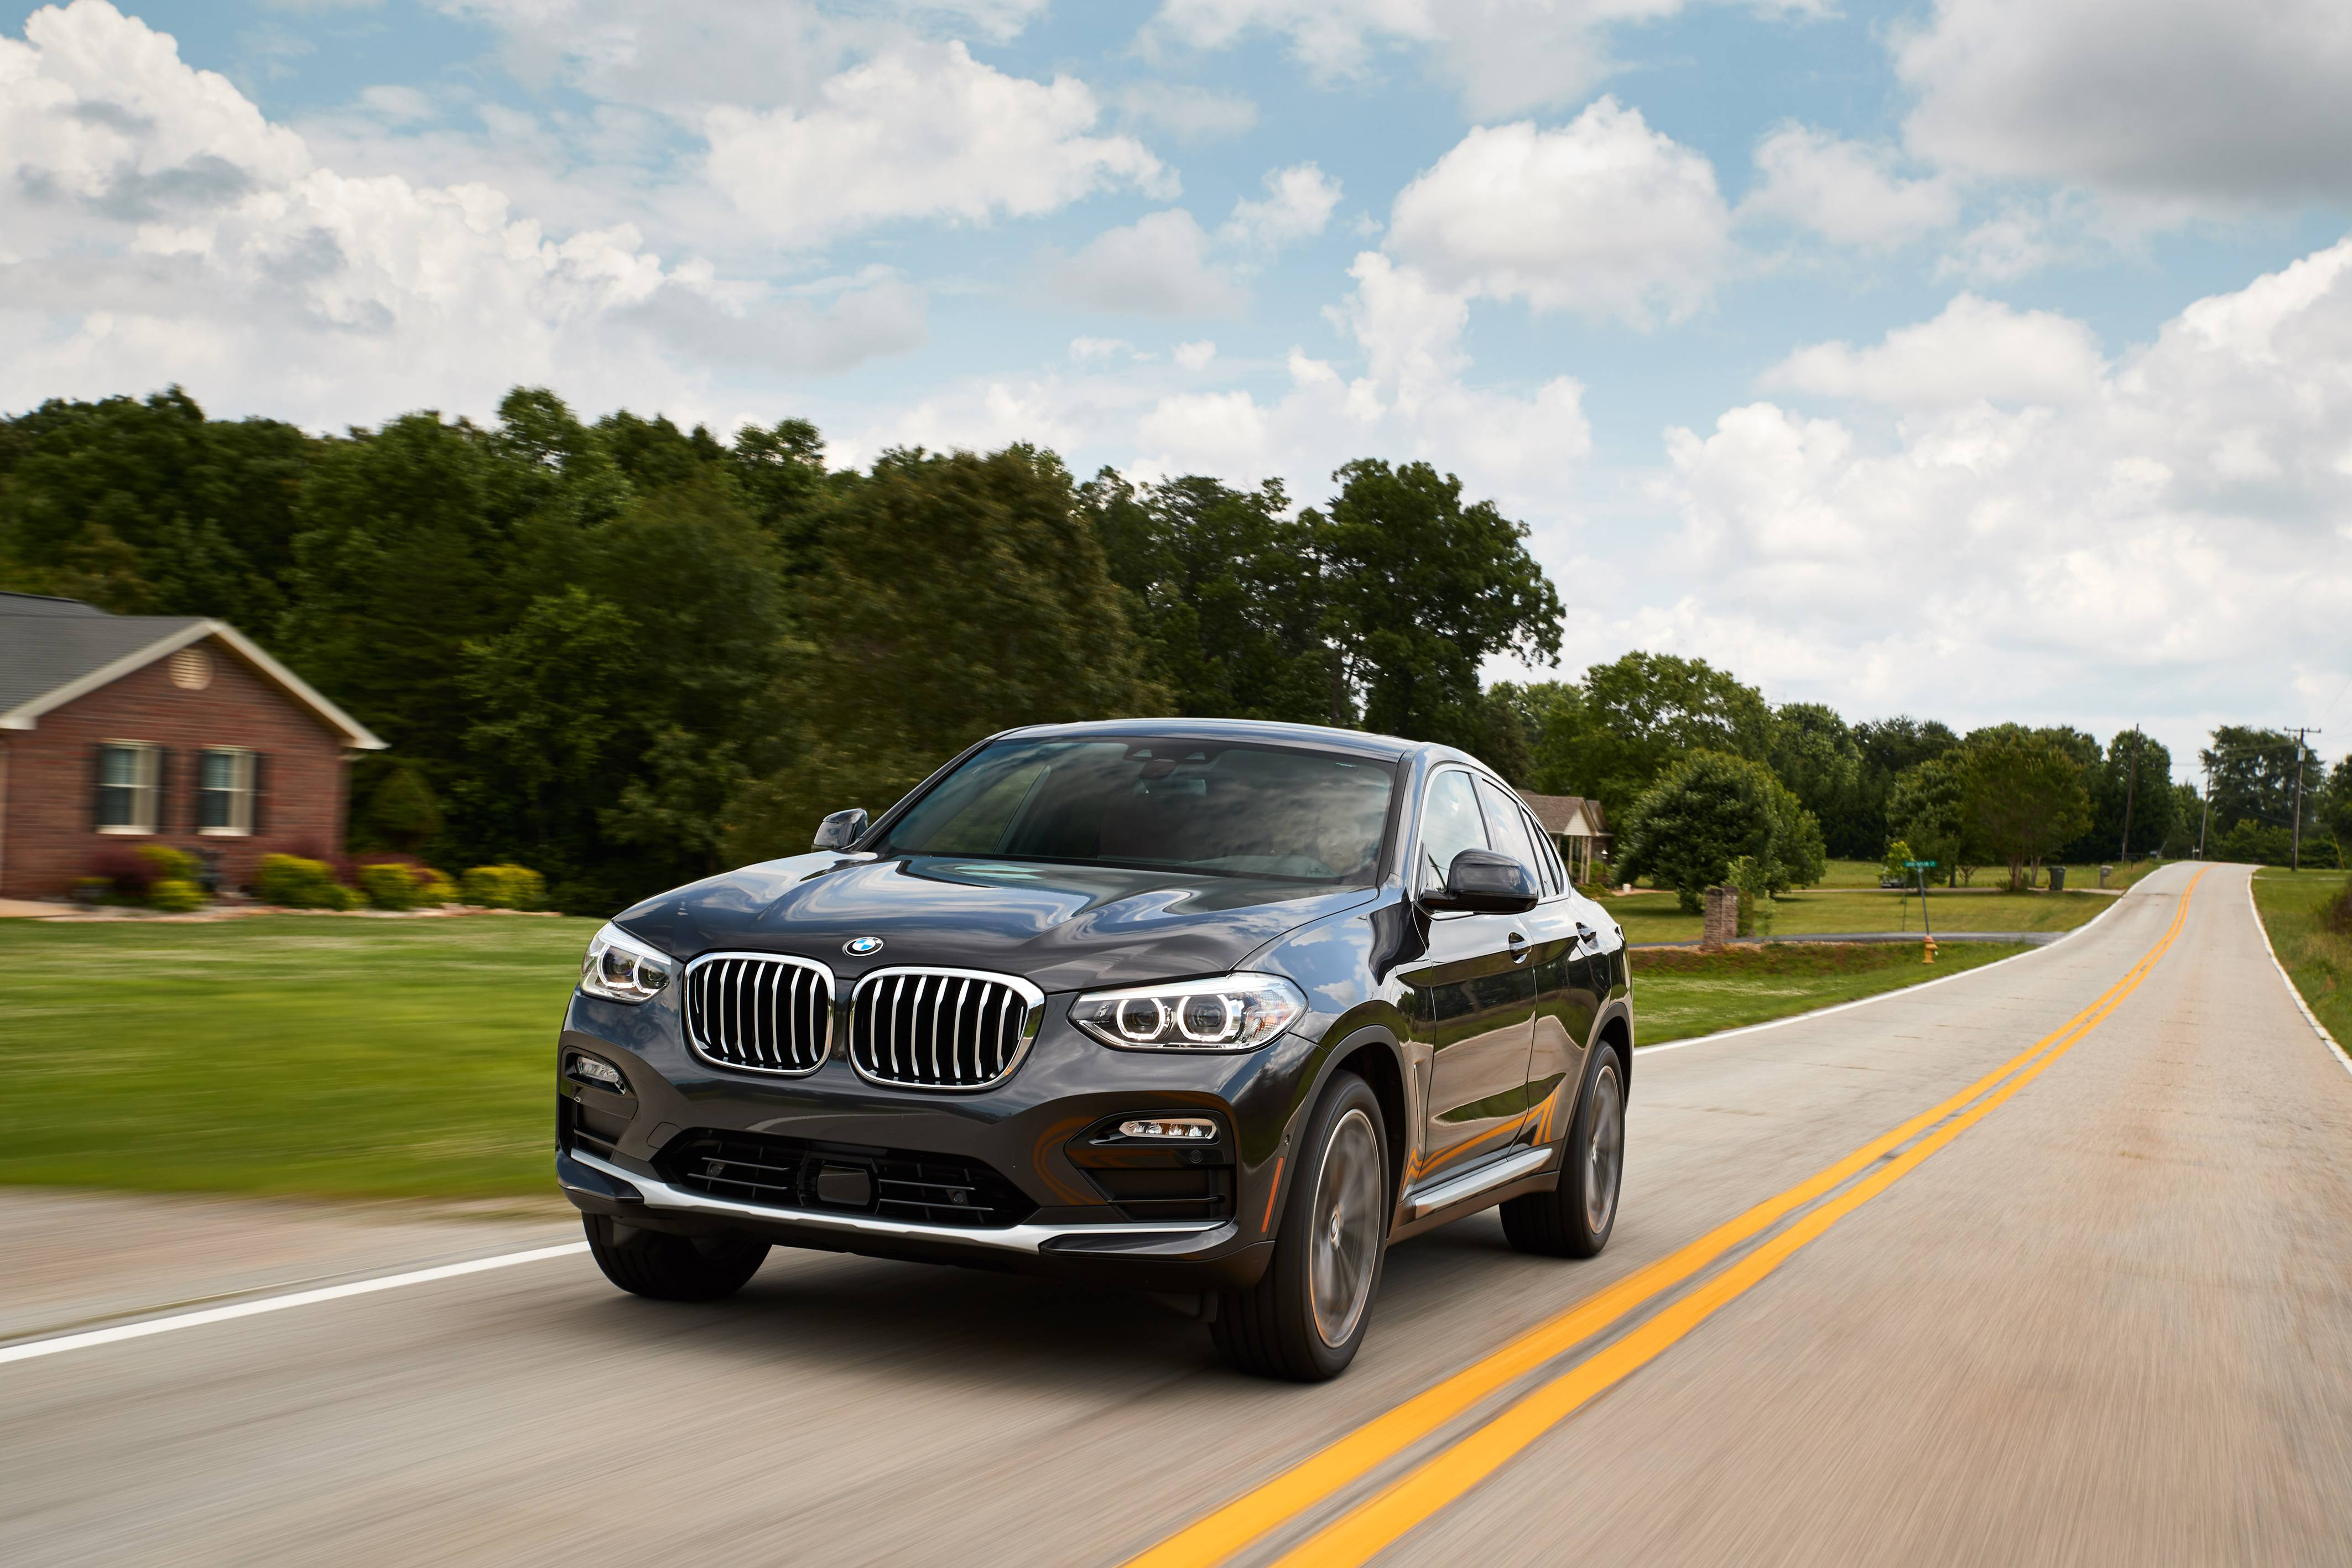 Demo BMW X4 xDrive30i for $649+HST / month.